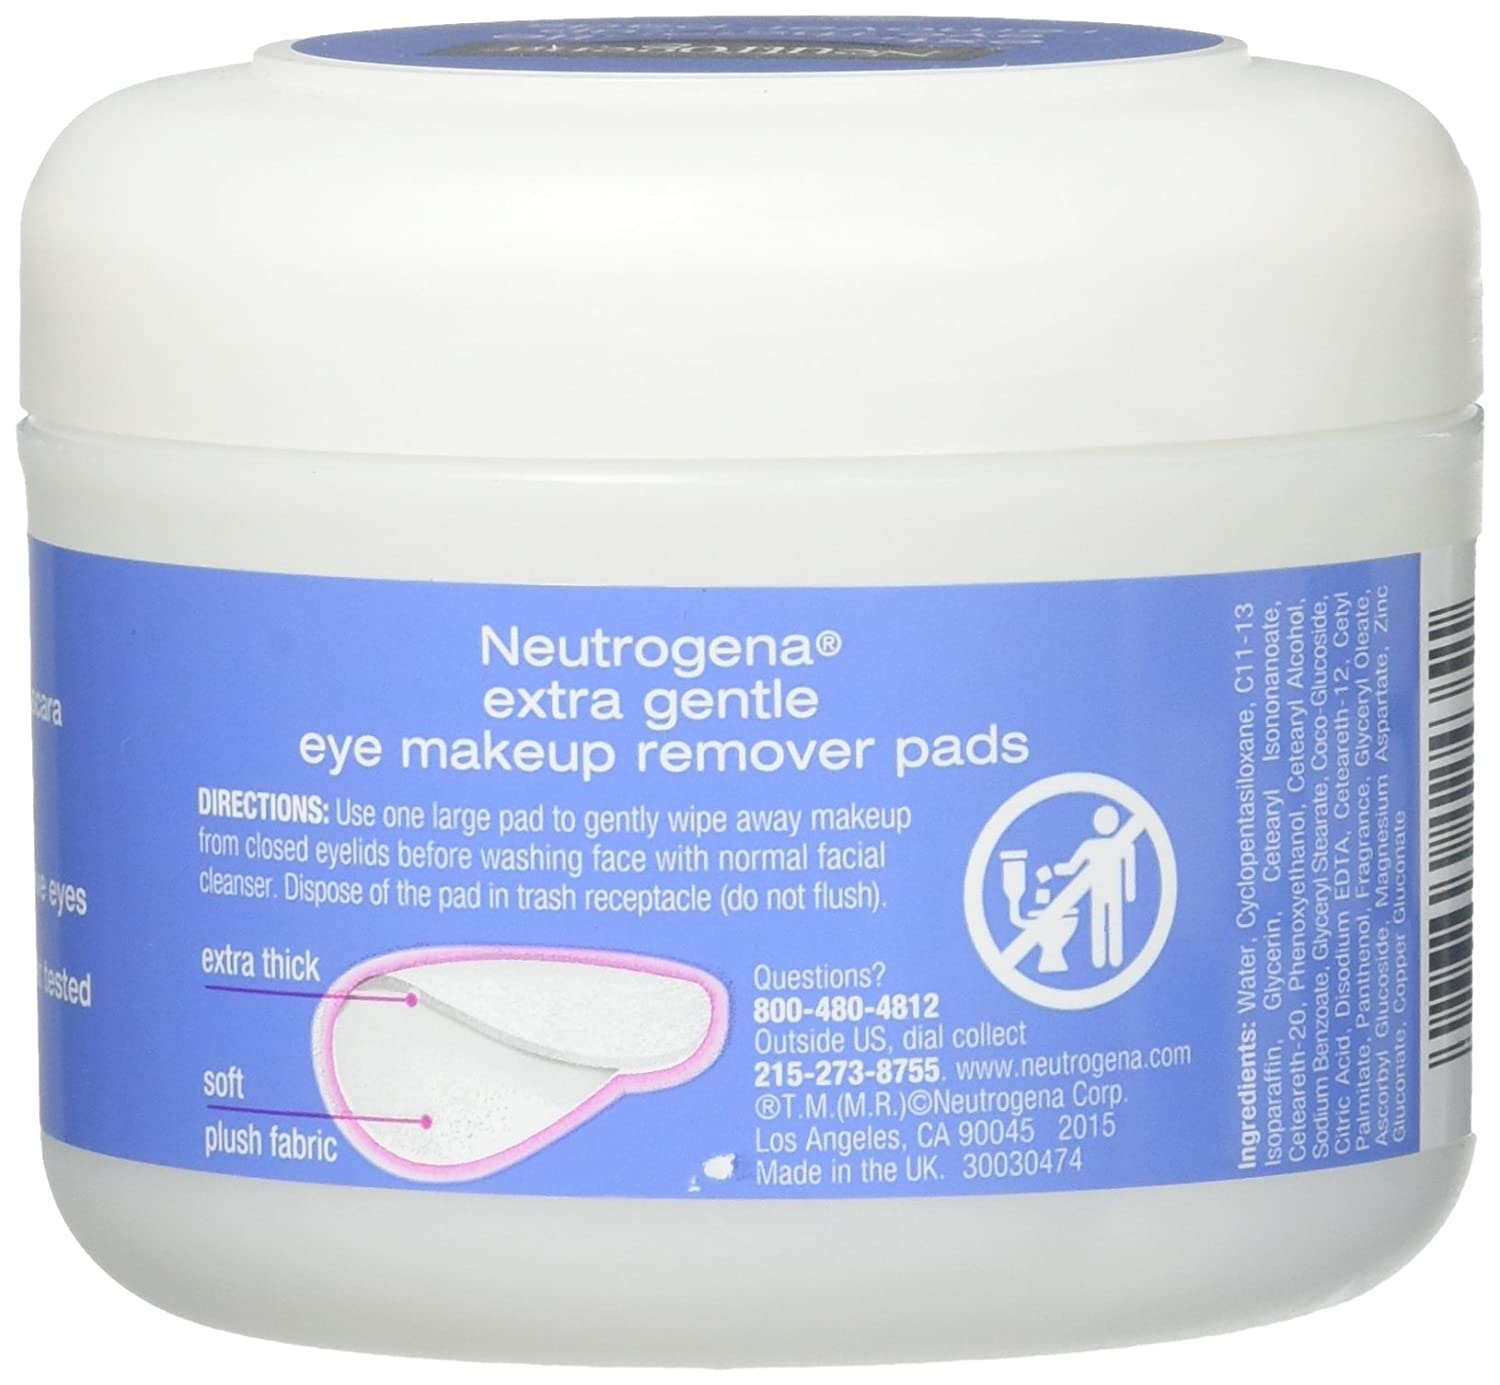 Neutrogena Eye Extra Gentle Makeup Remover Pads 30 Count Jar 6 Pack